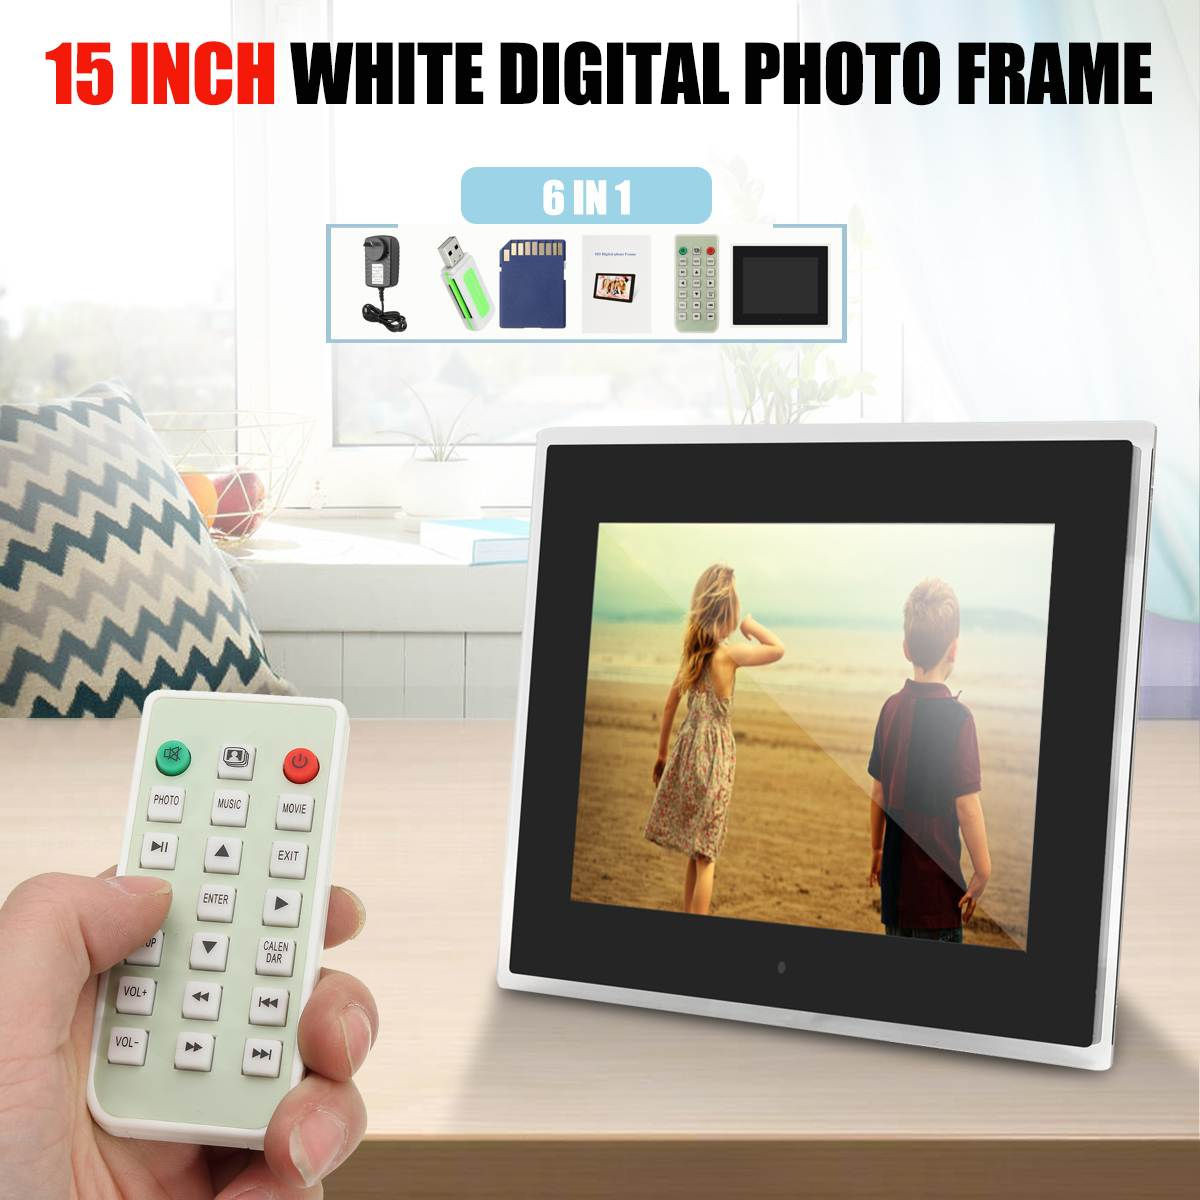 15 Black HD Digital Photo Frame 1024x768 LED Display Playback Electronic Album Picture Movie Player Timing Alarm Clock 2GB SD15 Black HD Digital Photo Frame 1024x768 LED Display Playback Electronic Album Picture Movie Player Timing Alarm Clock 2GB SD